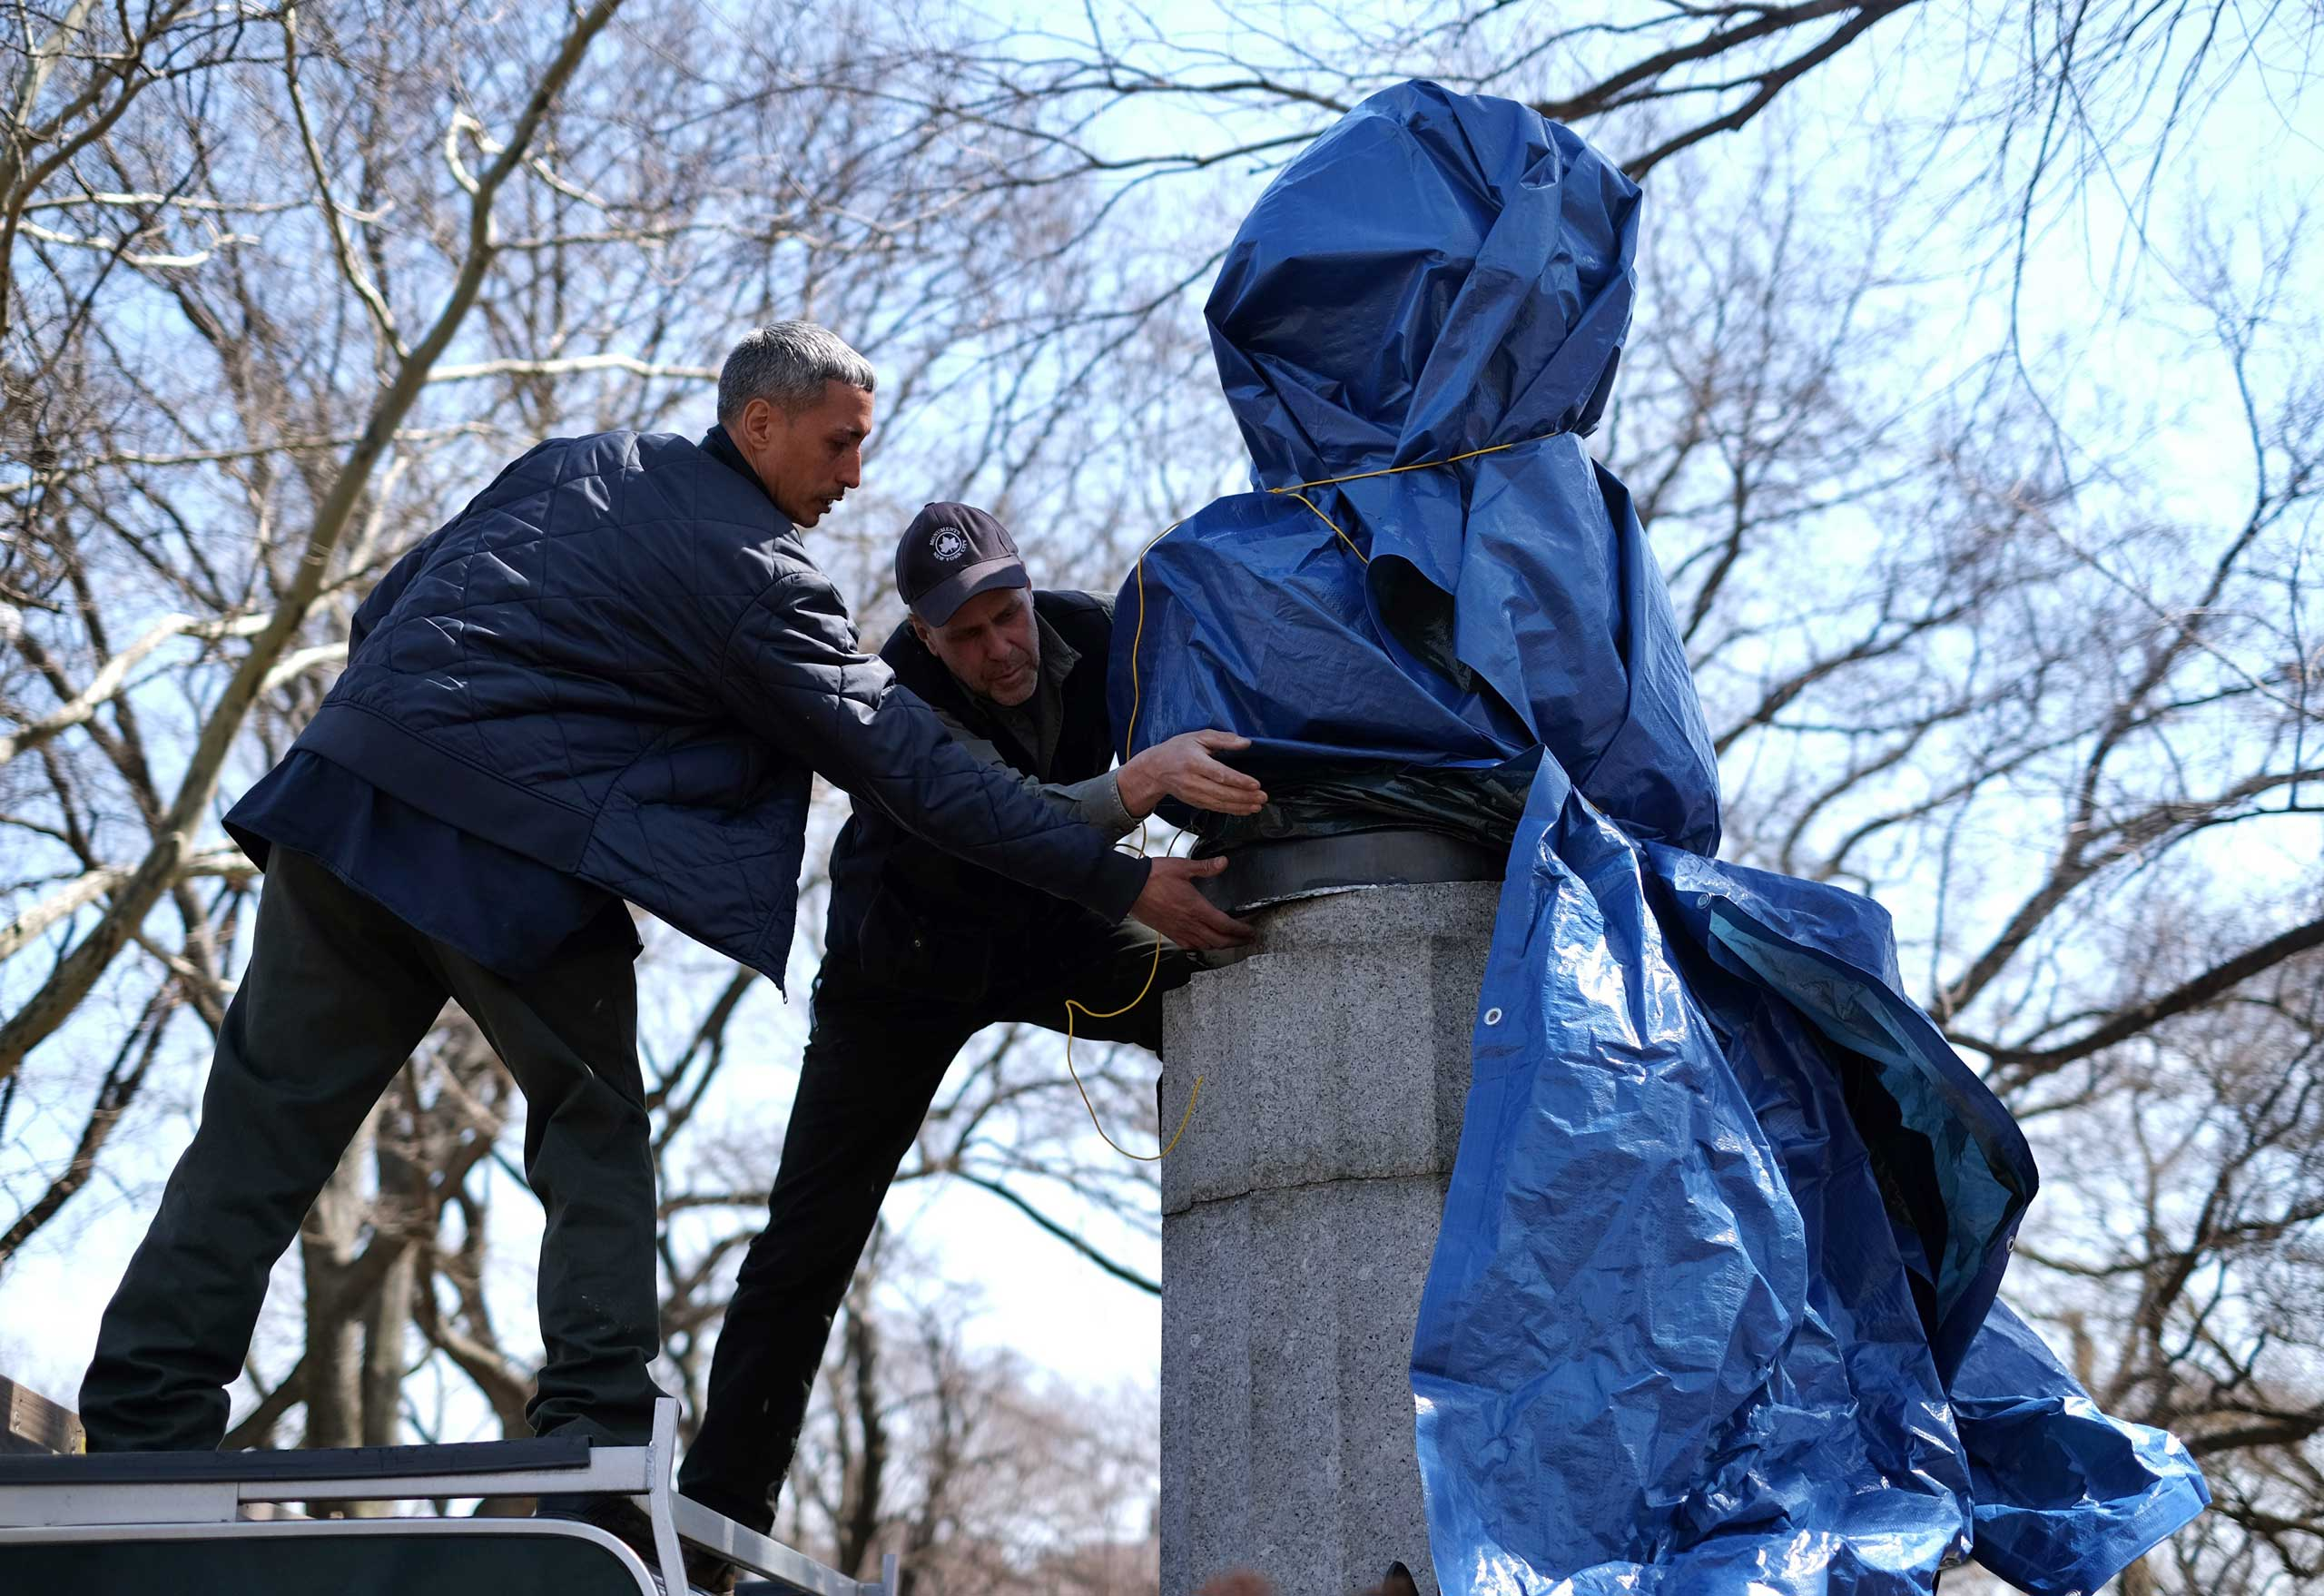 New York City Department of Parks and Recreation employees take down a statue of former National Security Agency (NSA) contractor Edward Snowden at the Fort Greene Park in Brooklyn, N.Y., on Apr. 6, 2015.